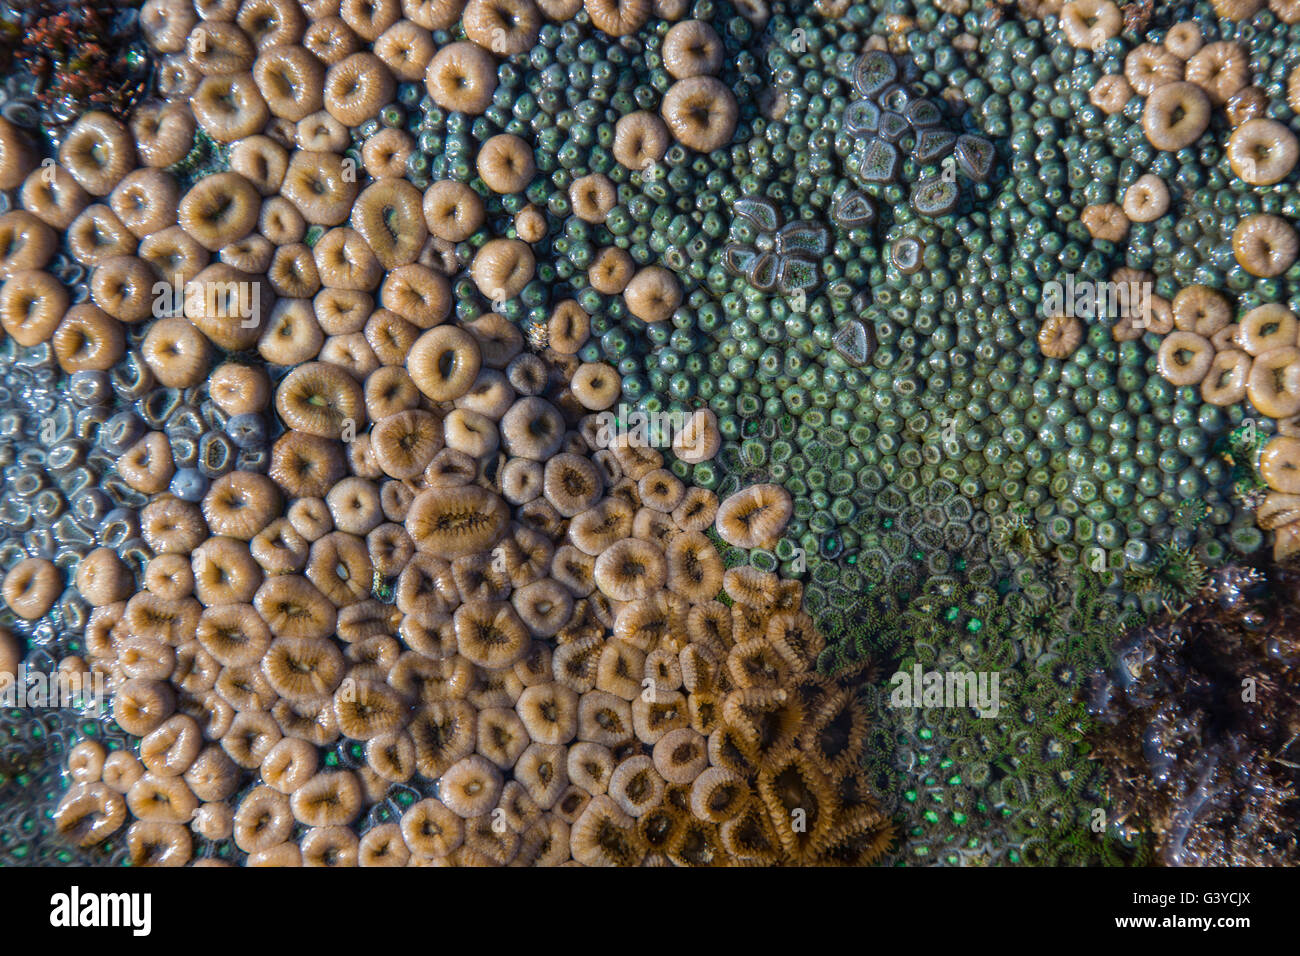 Various Zoanthids or soft coral on the rocks in the inter-tidal zone in Mozambique - Stock Image